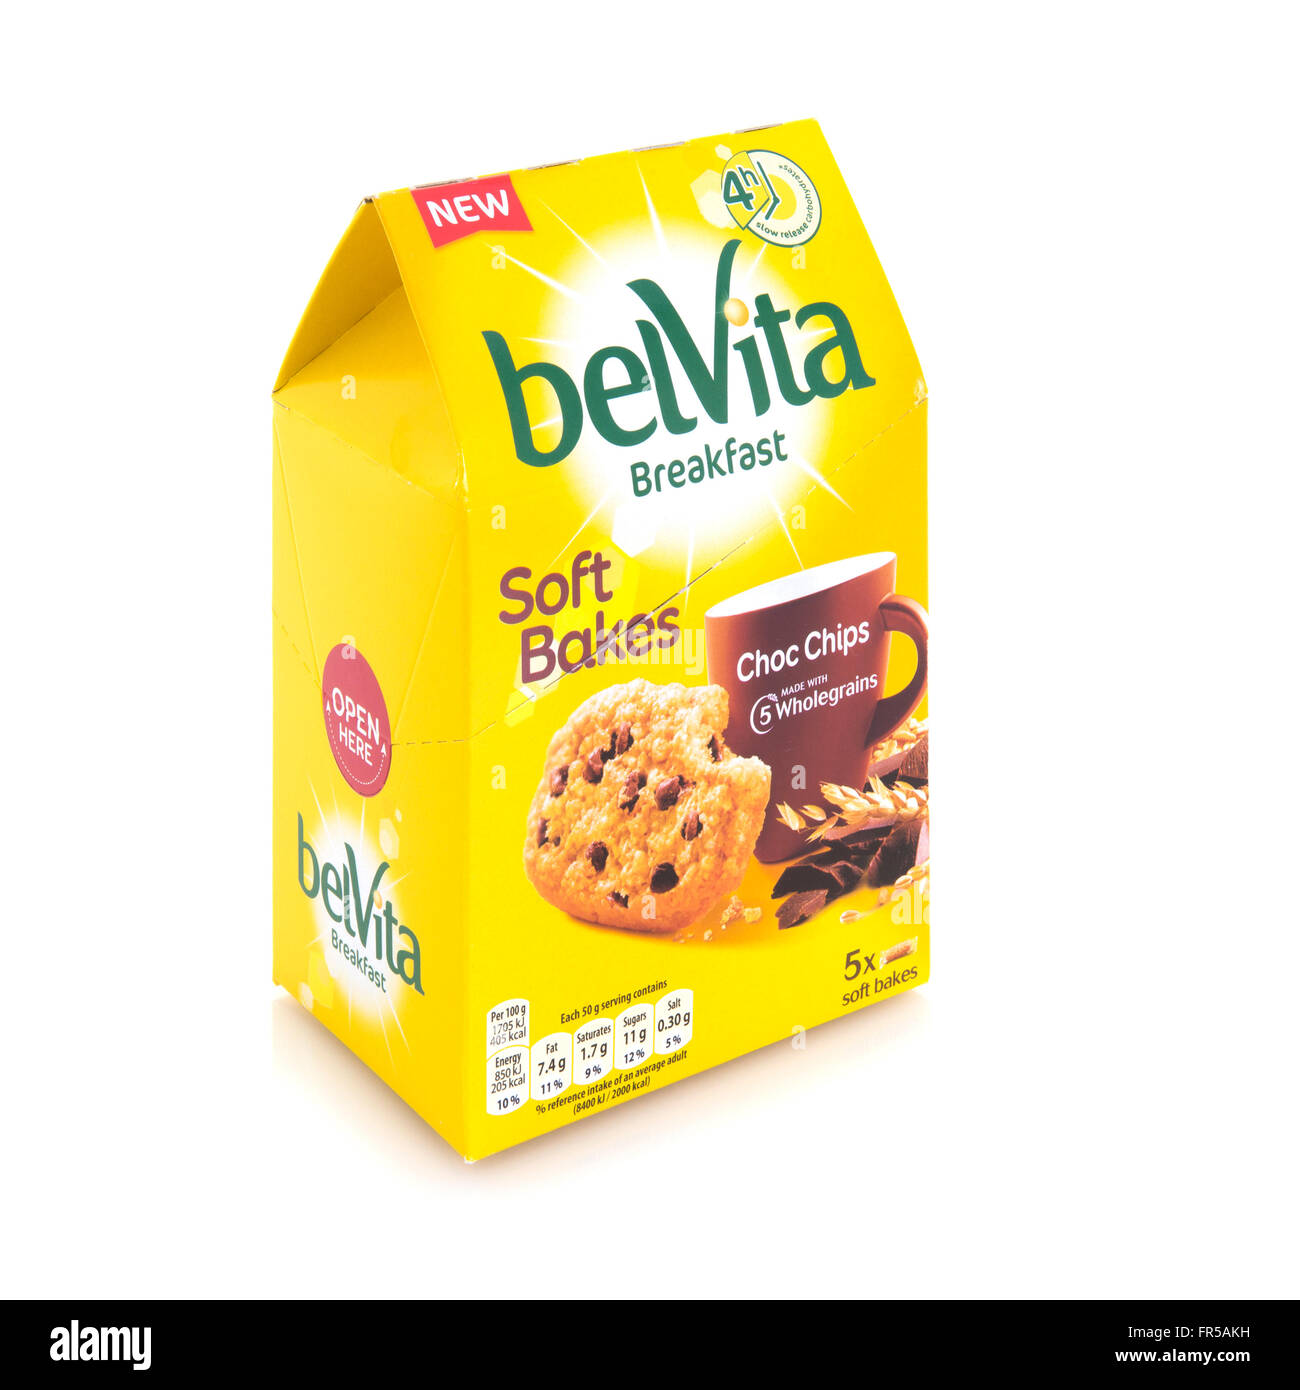 Belvita Soft Bakes Breakfast with Choc Chips and wholegrains on a white background - Stock Image